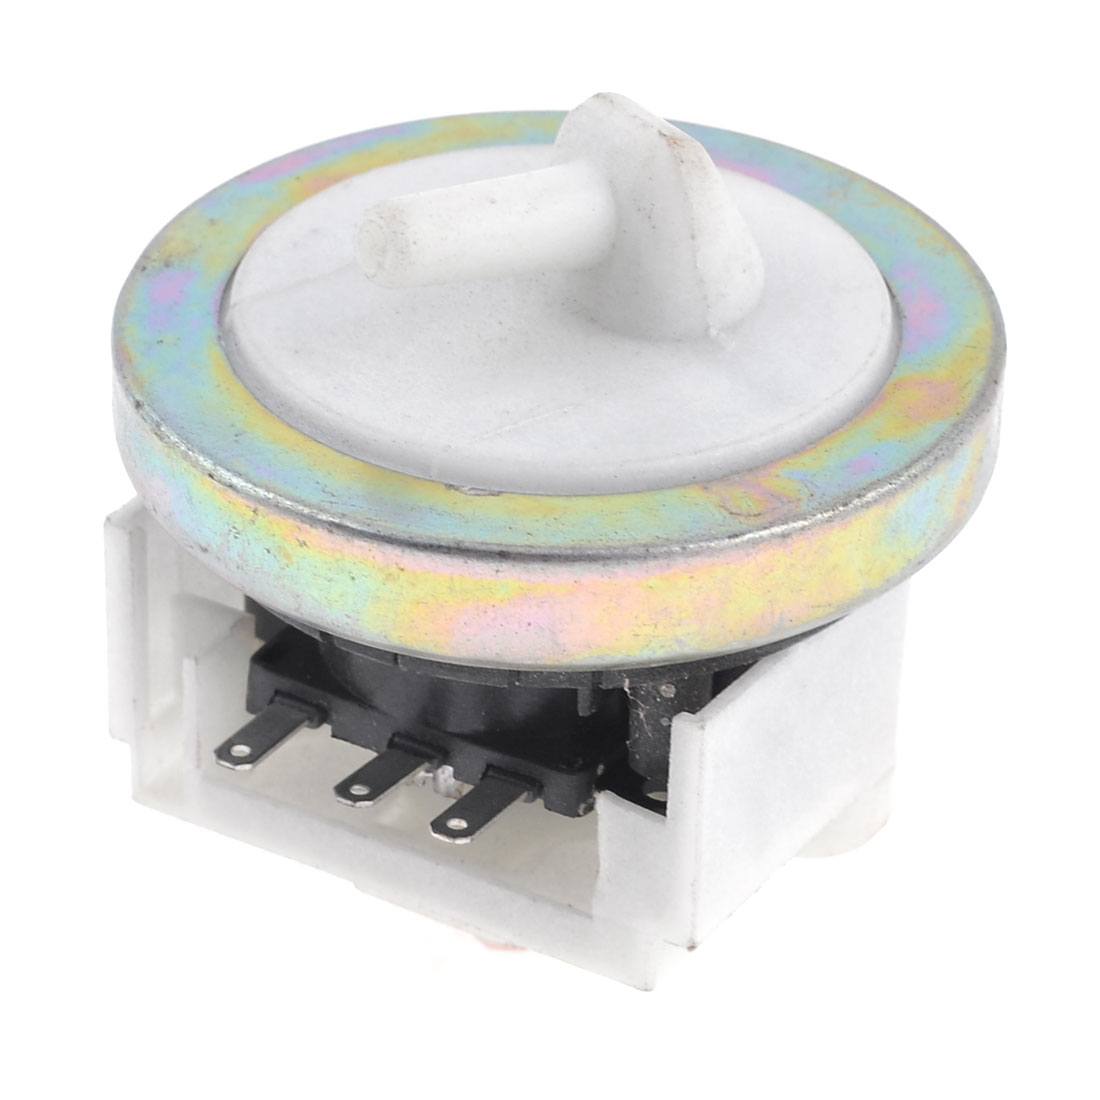 DC 15V 10mA Water Control Level Switch for Laundry Washing Machine